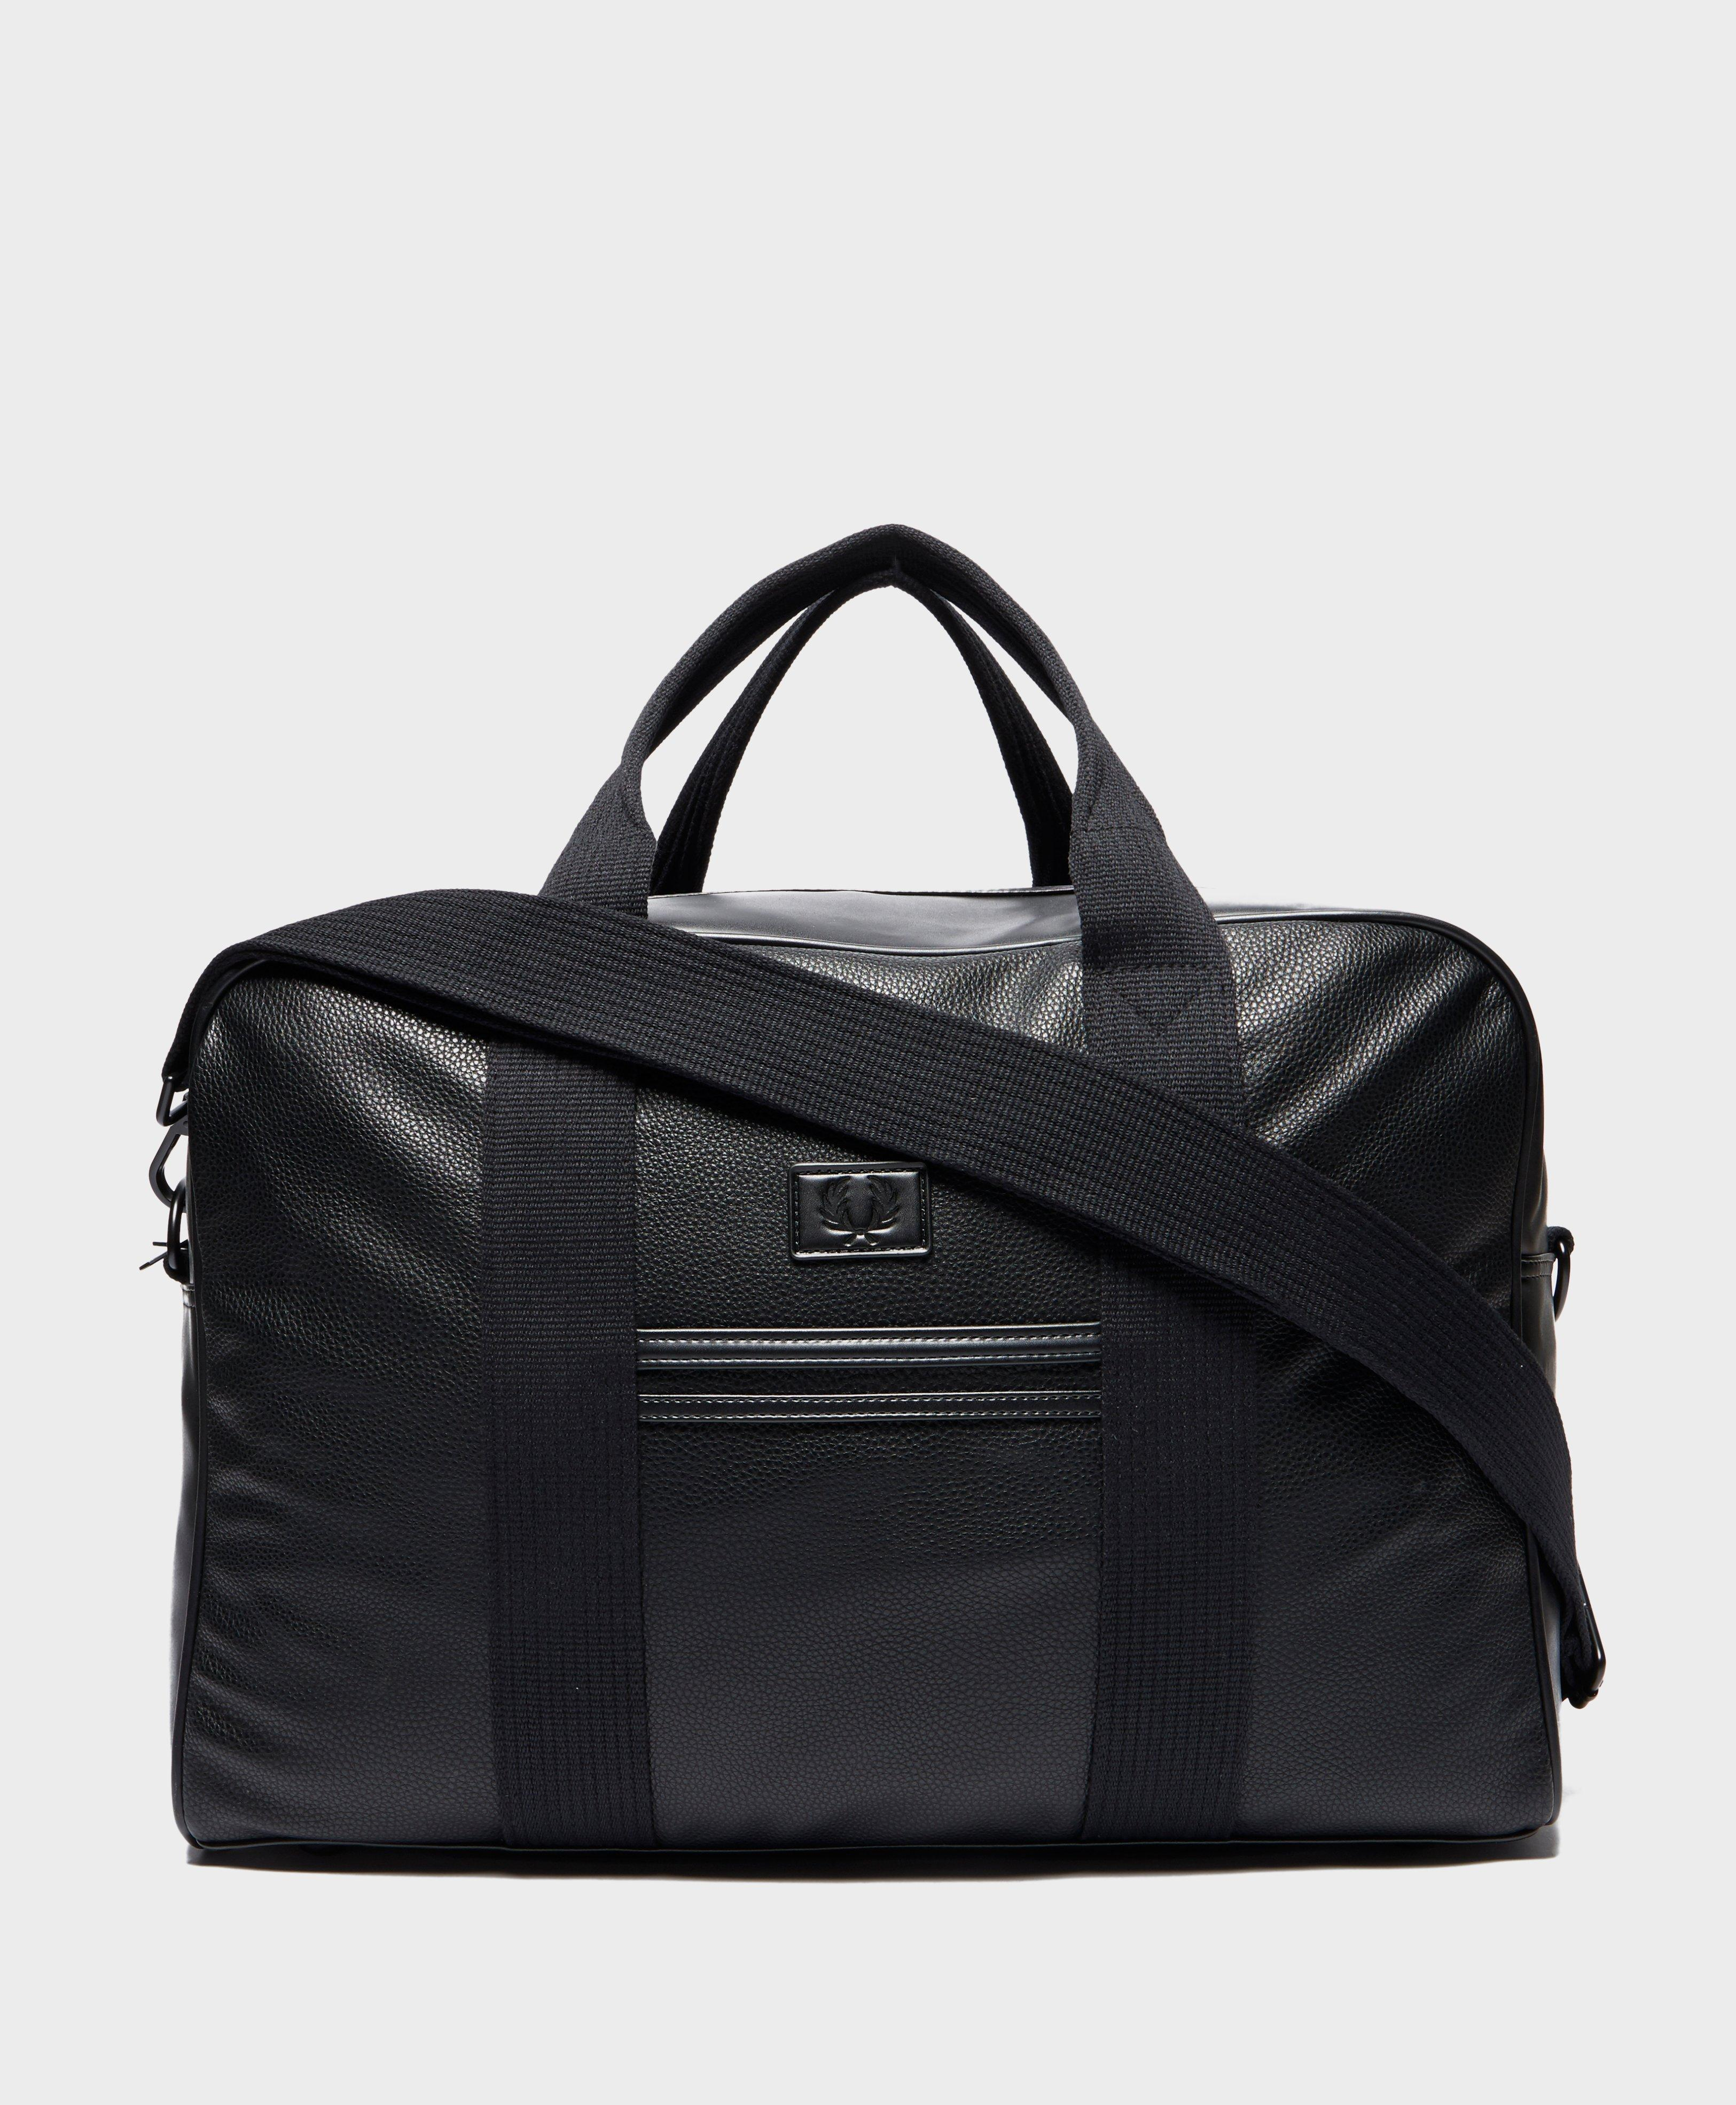 a29596c52428 Lyst - Fred Perry Tumbled Holdall - Online Exclusive in Black for Men